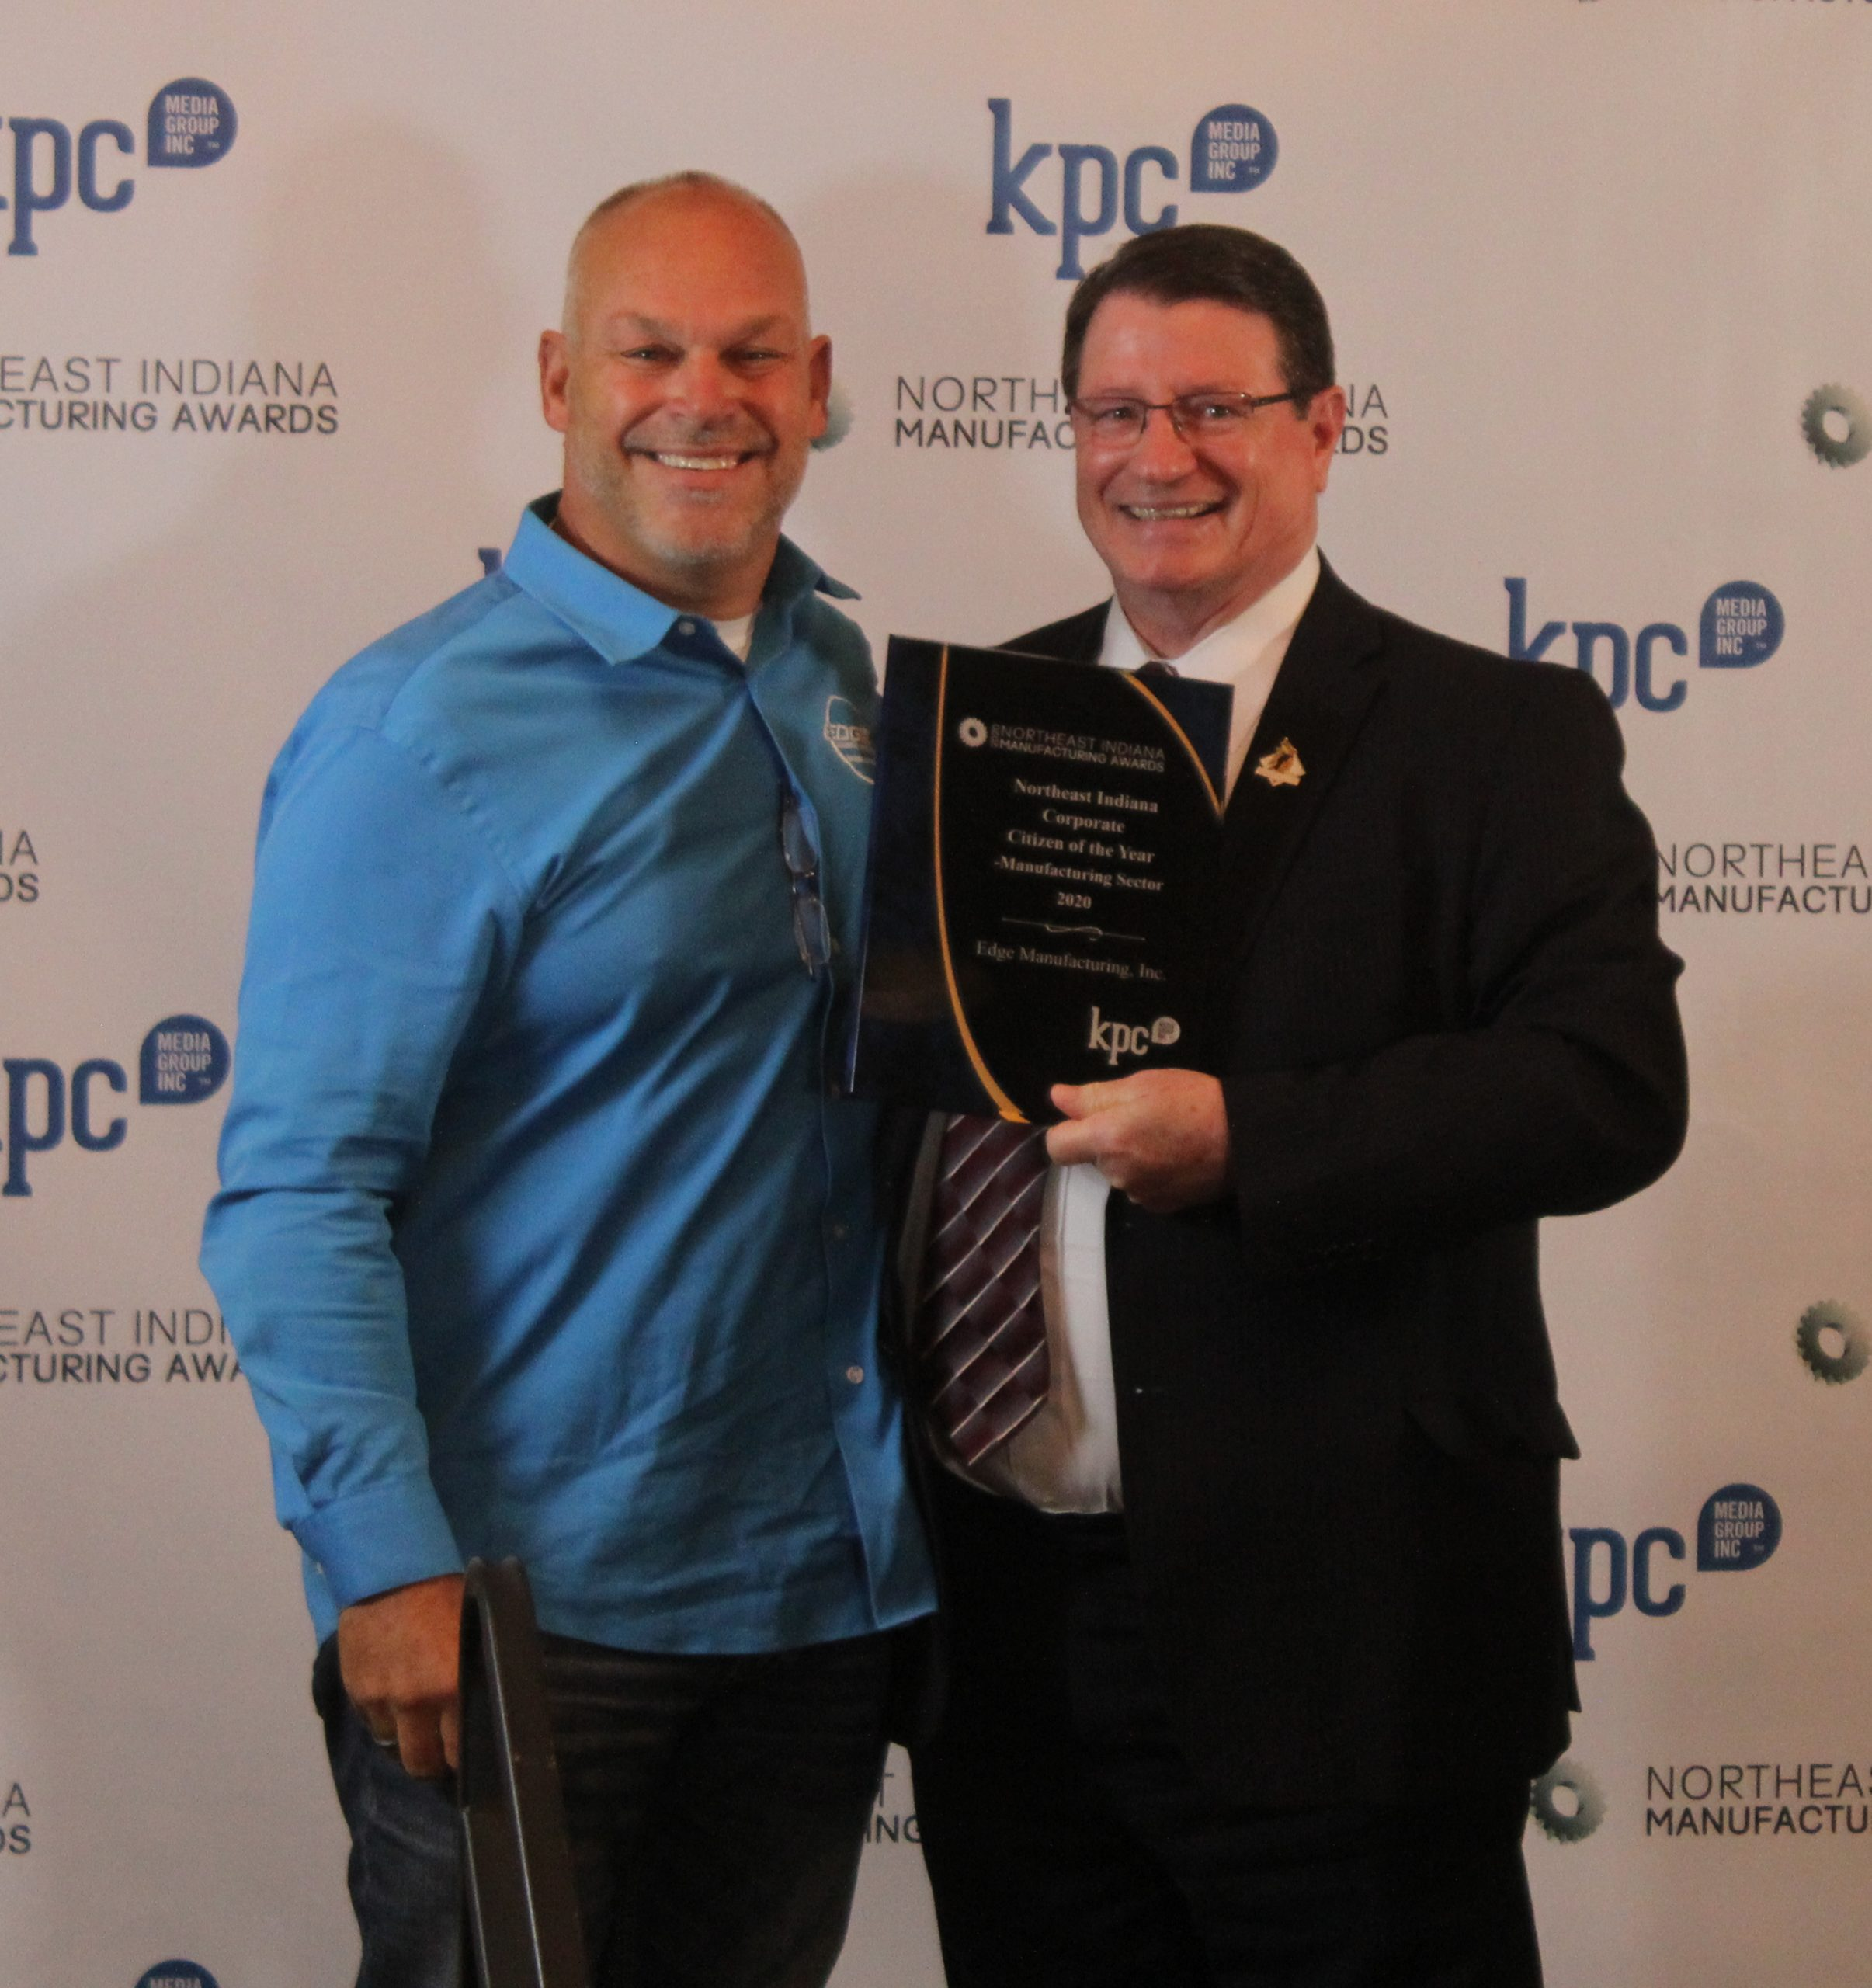 Bill Konyha, President and CEO of the Regional Chamber of Northeast Indiana Indiana, presenting the Corporate Citizen of the Year Award to  EDGE Manufacturing, Inc.